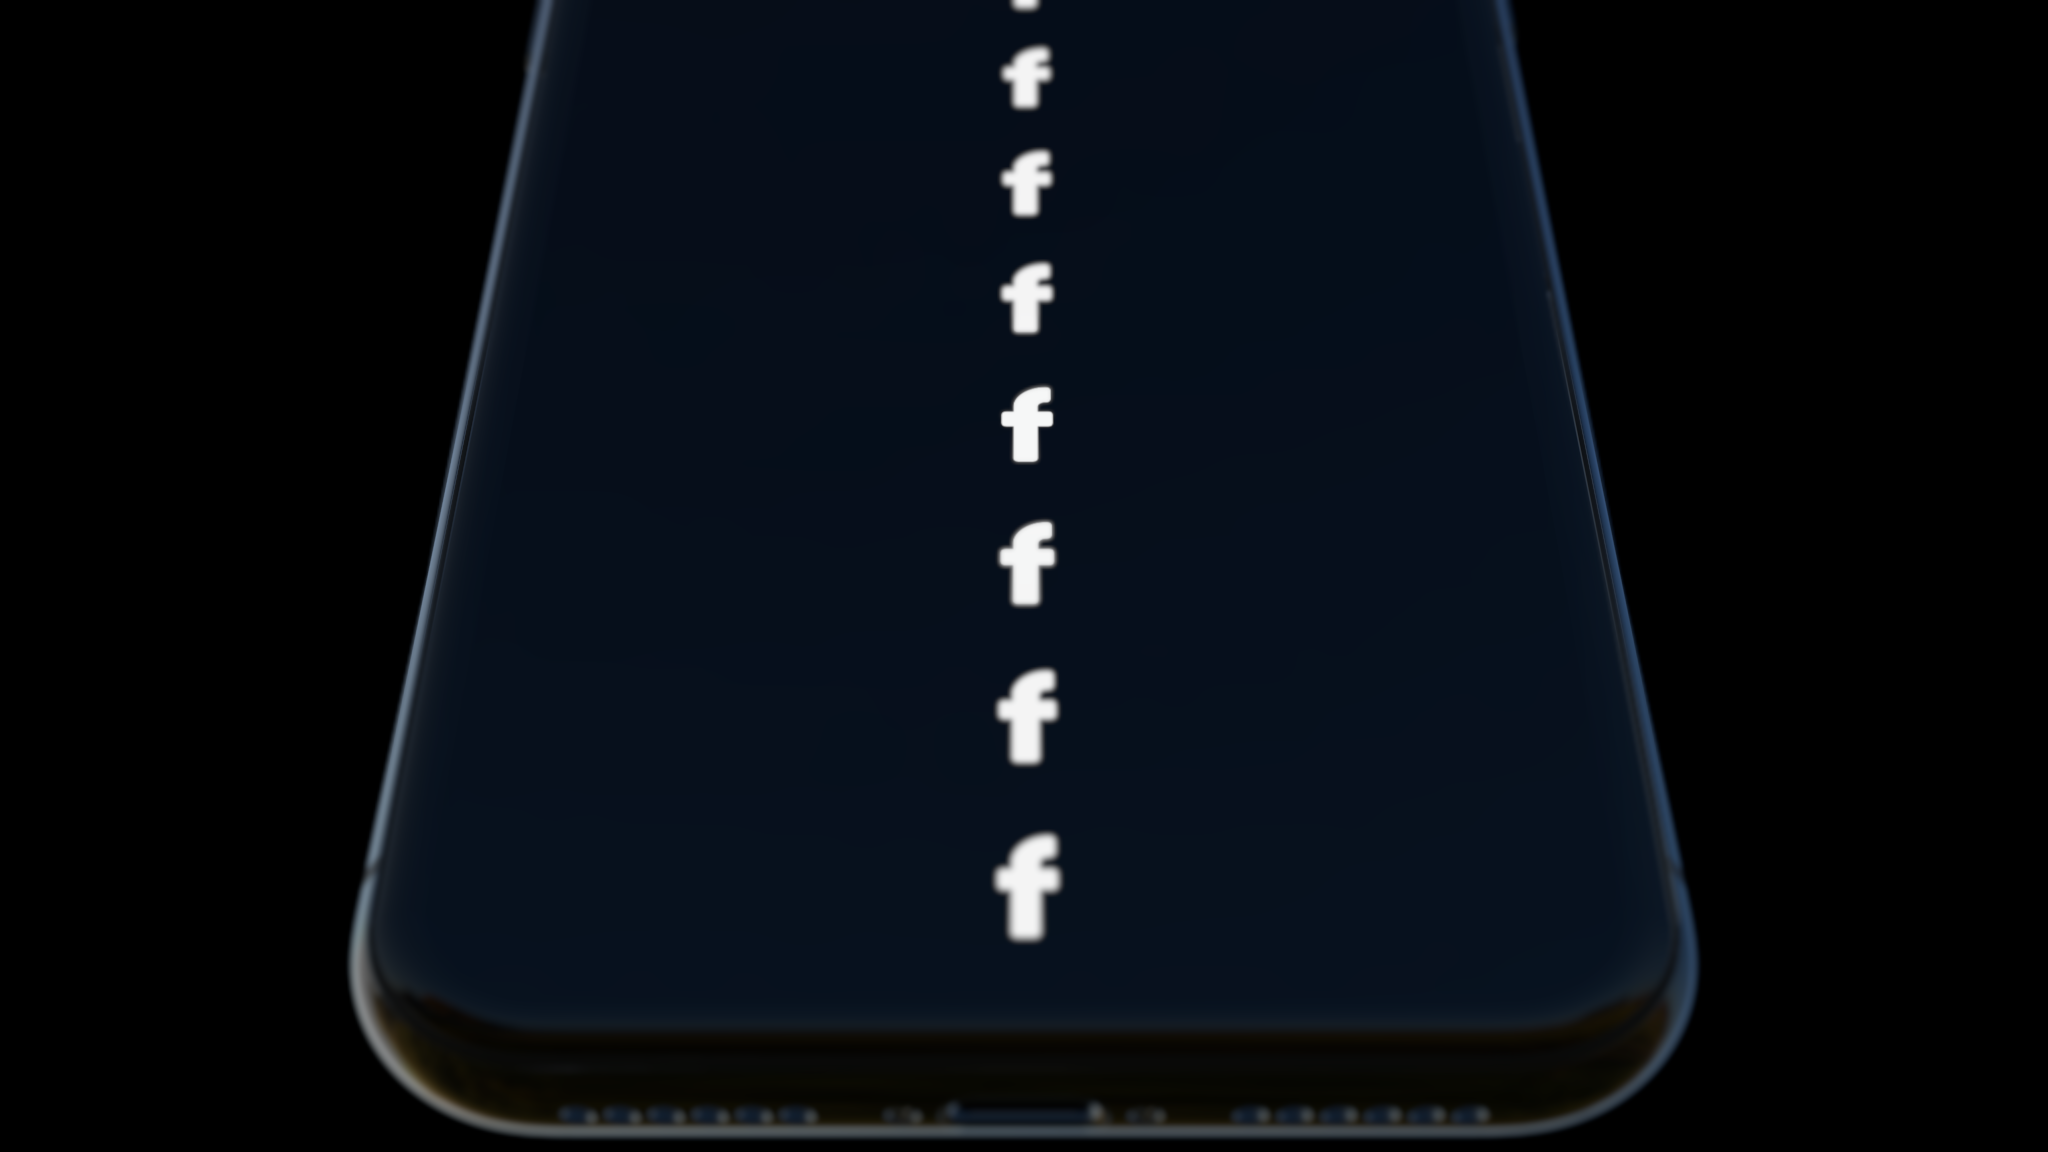 An iPhone mockup showing moderate depth of field